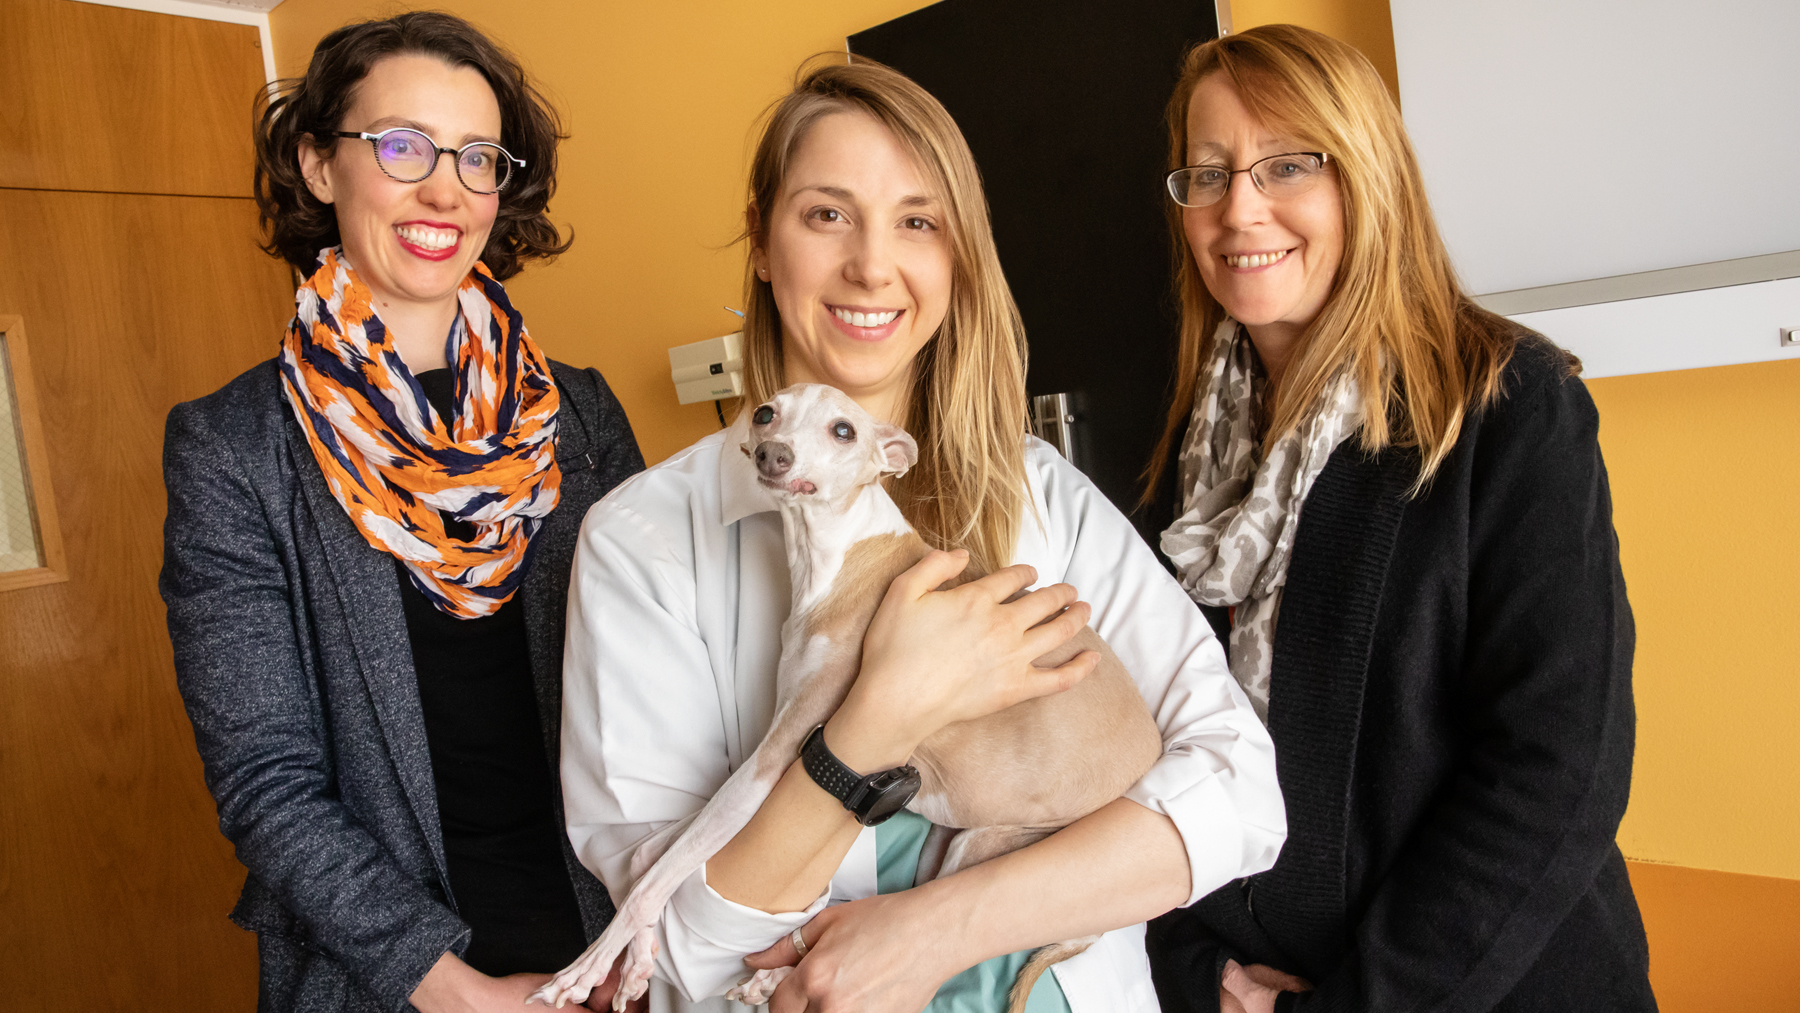 With colleagues, veterinary clinical medicine professors Dr. Ashley Mitek, Dr. Stephanie Keating and Dr. Maureen McMichael, developed an online pain management training program for veterinarians.